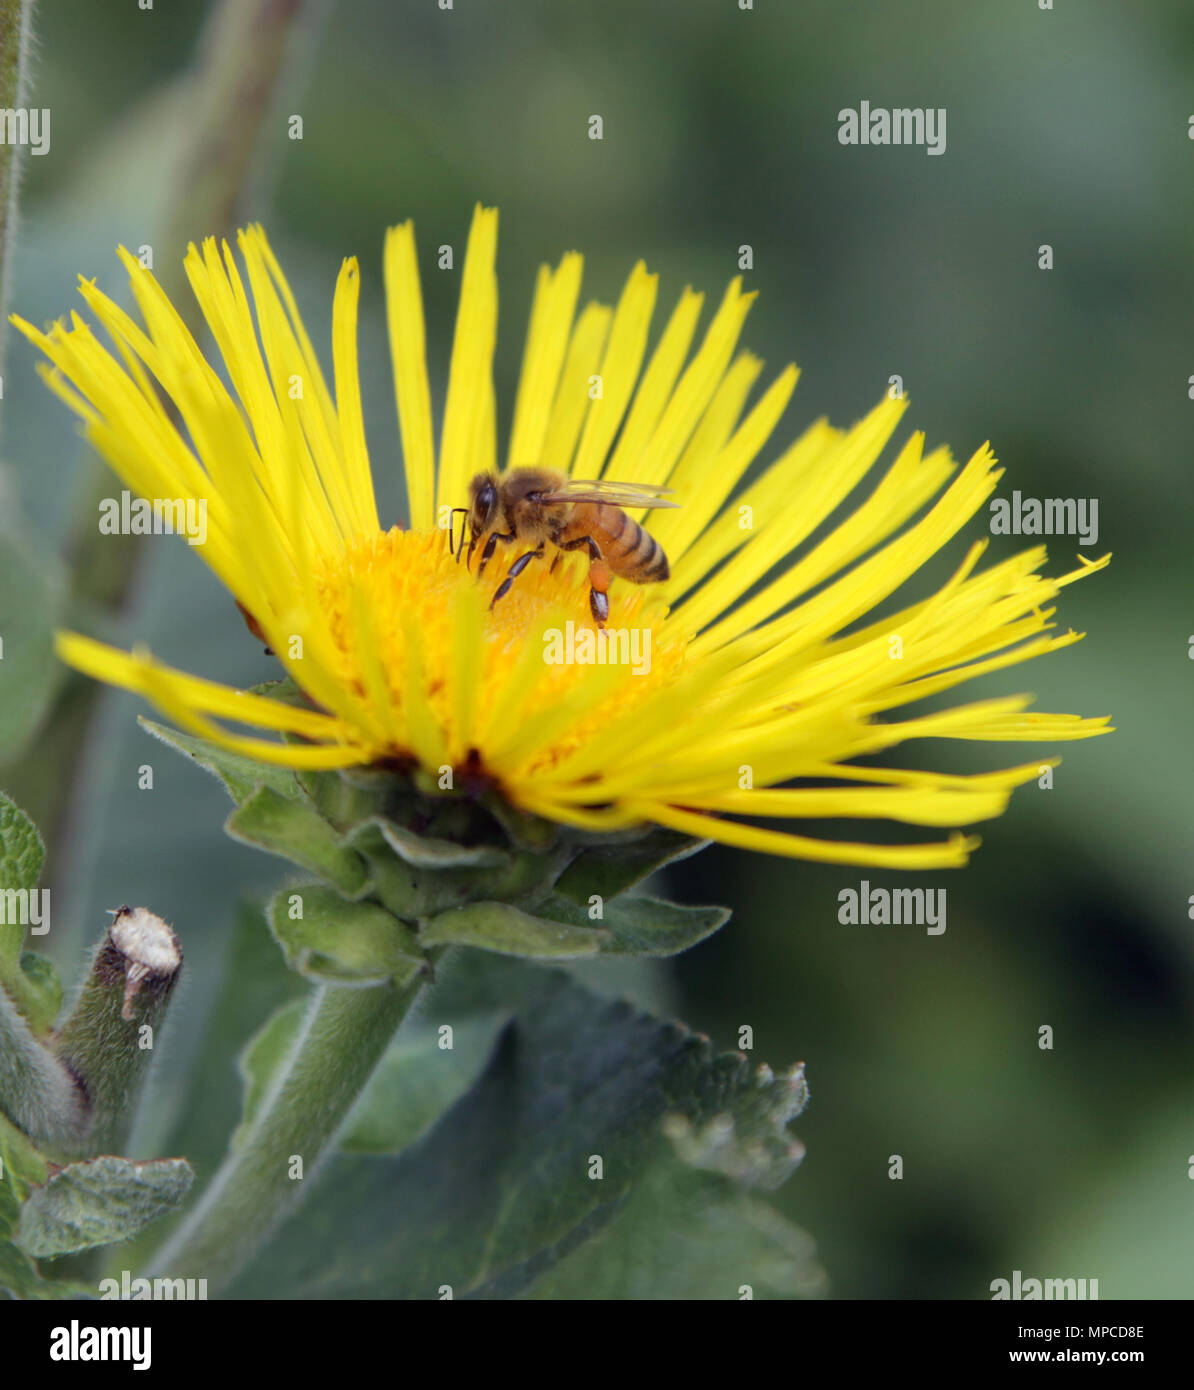 Bee on a yellow flower - Stock Image